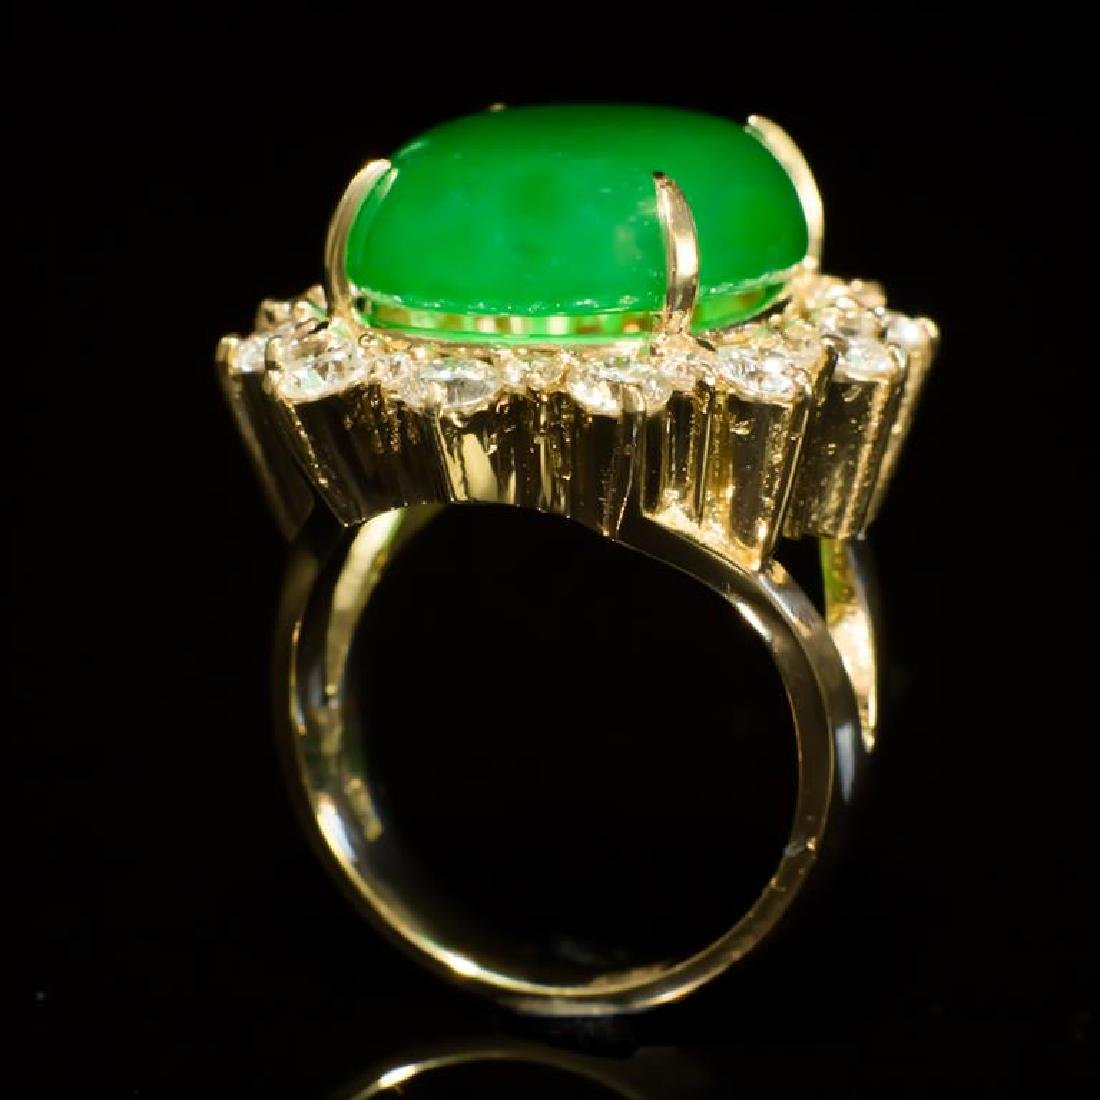 14K Gold 14.26ct Jadeite 2.41ct Diamond Ring - 3